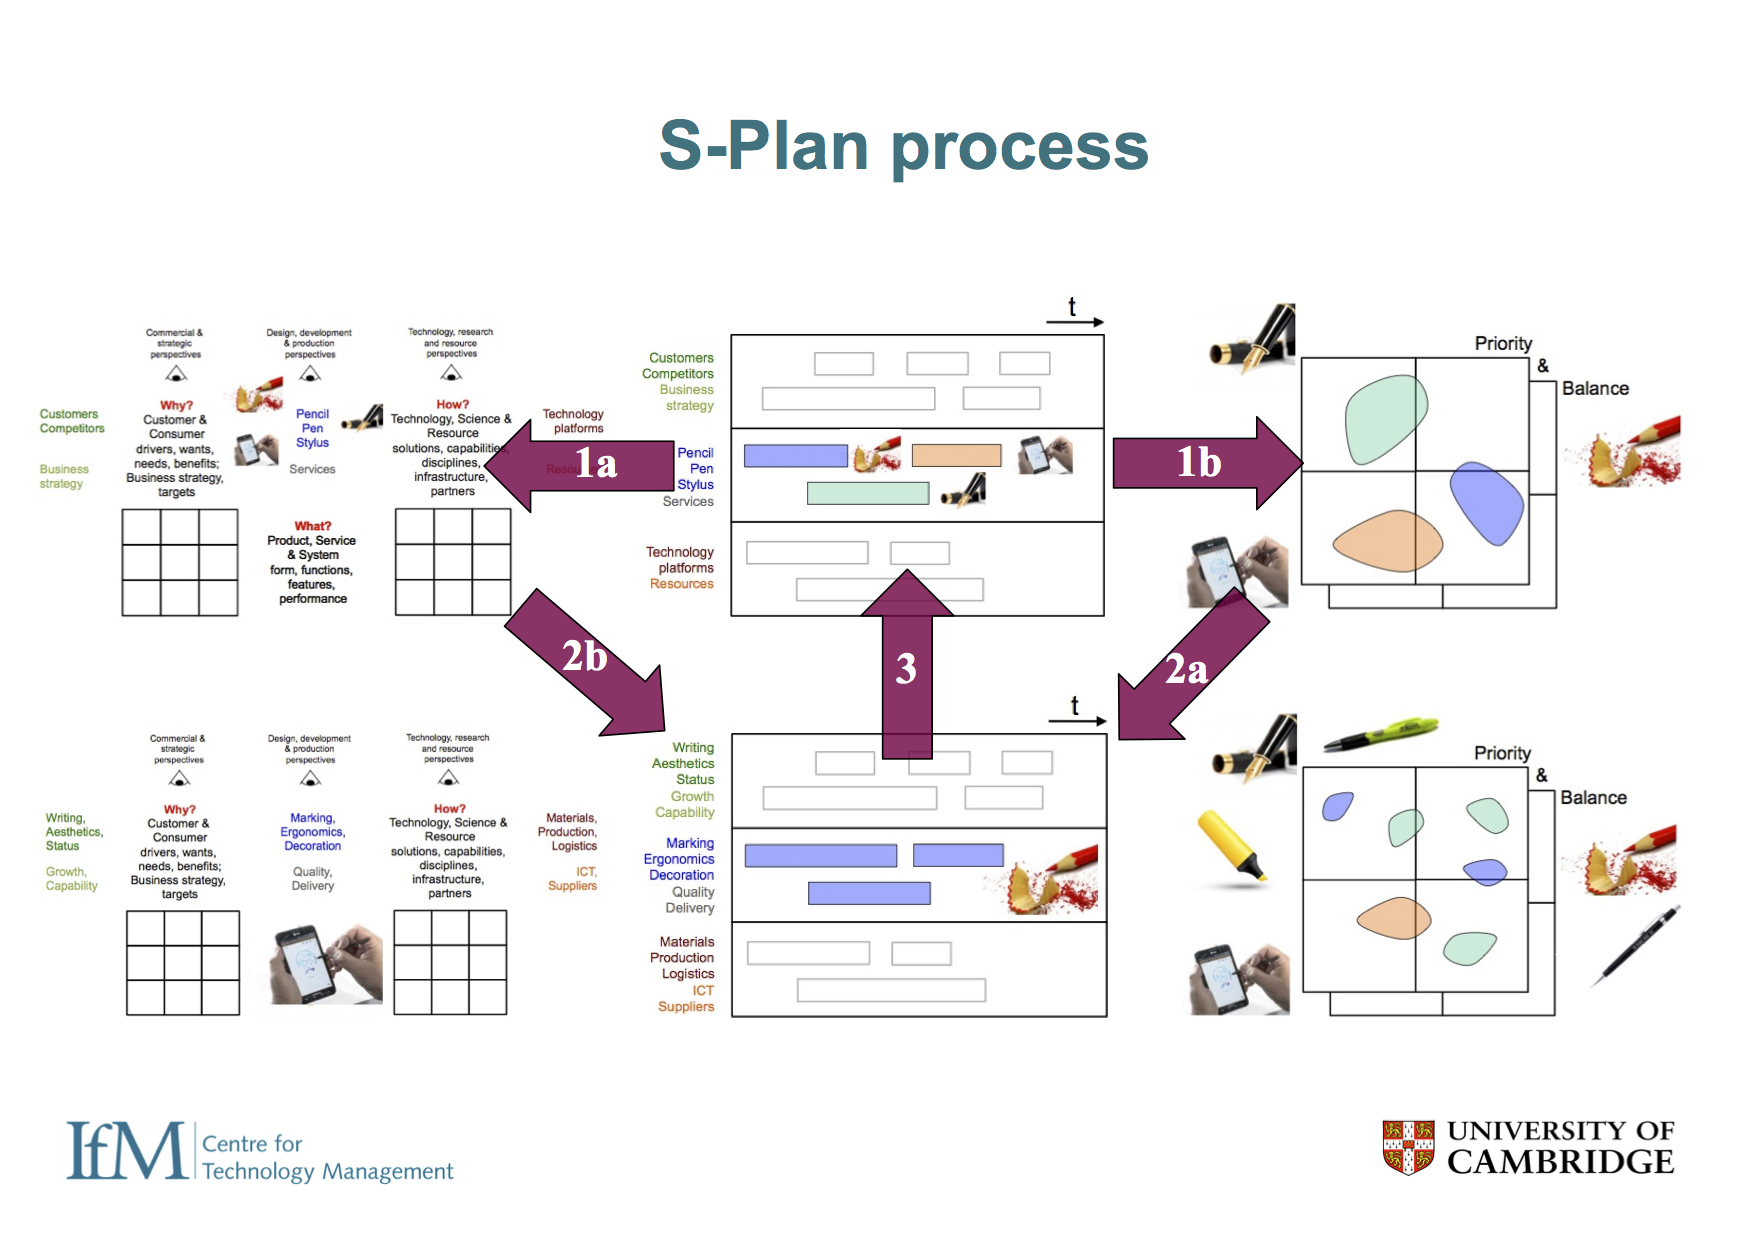 There is often confusion about the differences between the 'S-Plan' and 'T-Plan' Cambridge fast-start workshop methods, which can be easily distinguished when viewed through this scalable toolkit platform 'lens' - the methods use the same generic tools configured differently. The S-Plan approach is shown here...